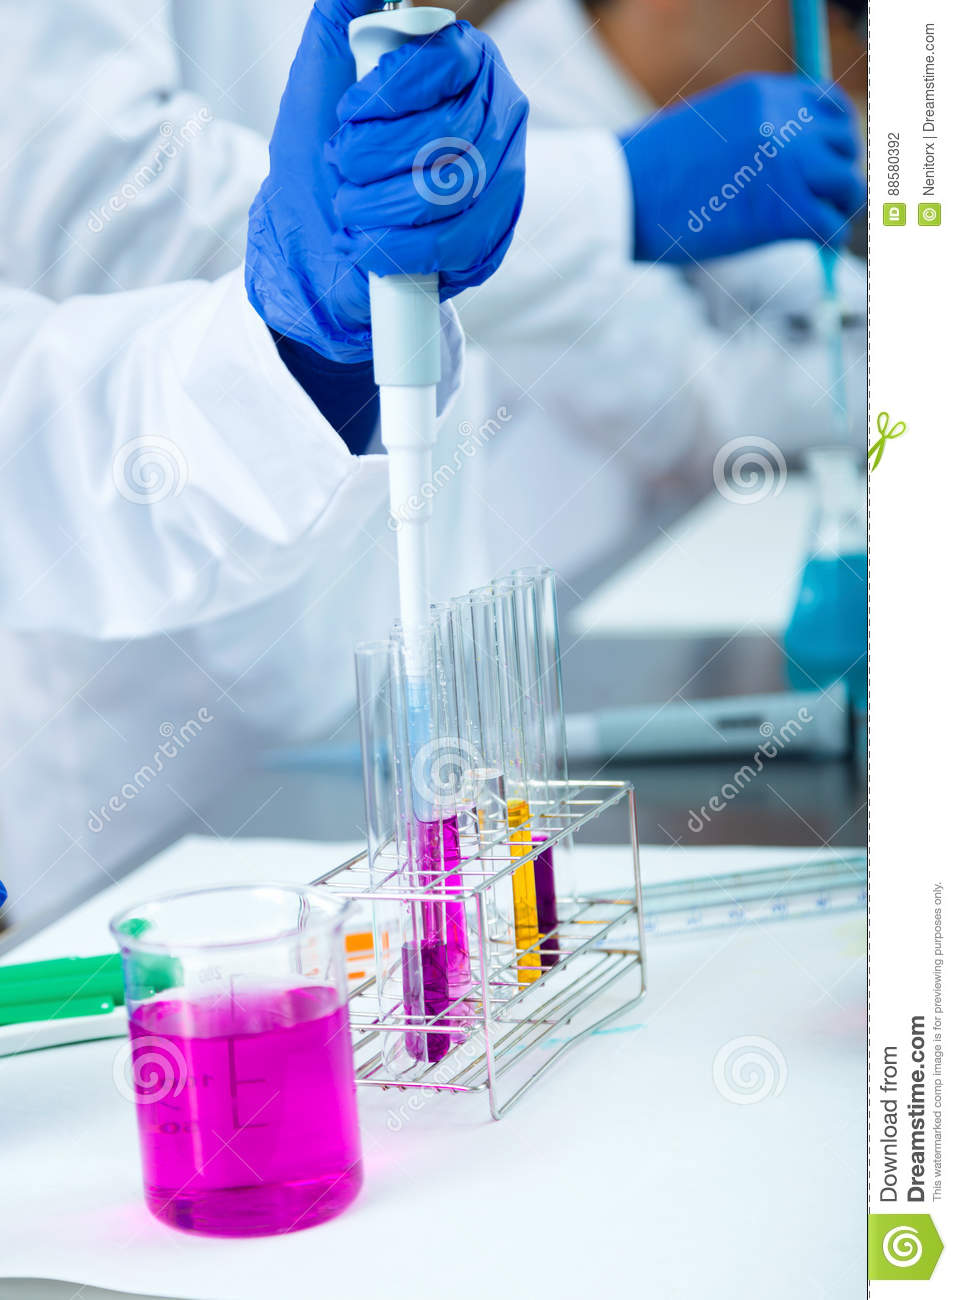 Concentrated scientist making experiment in laboratory.